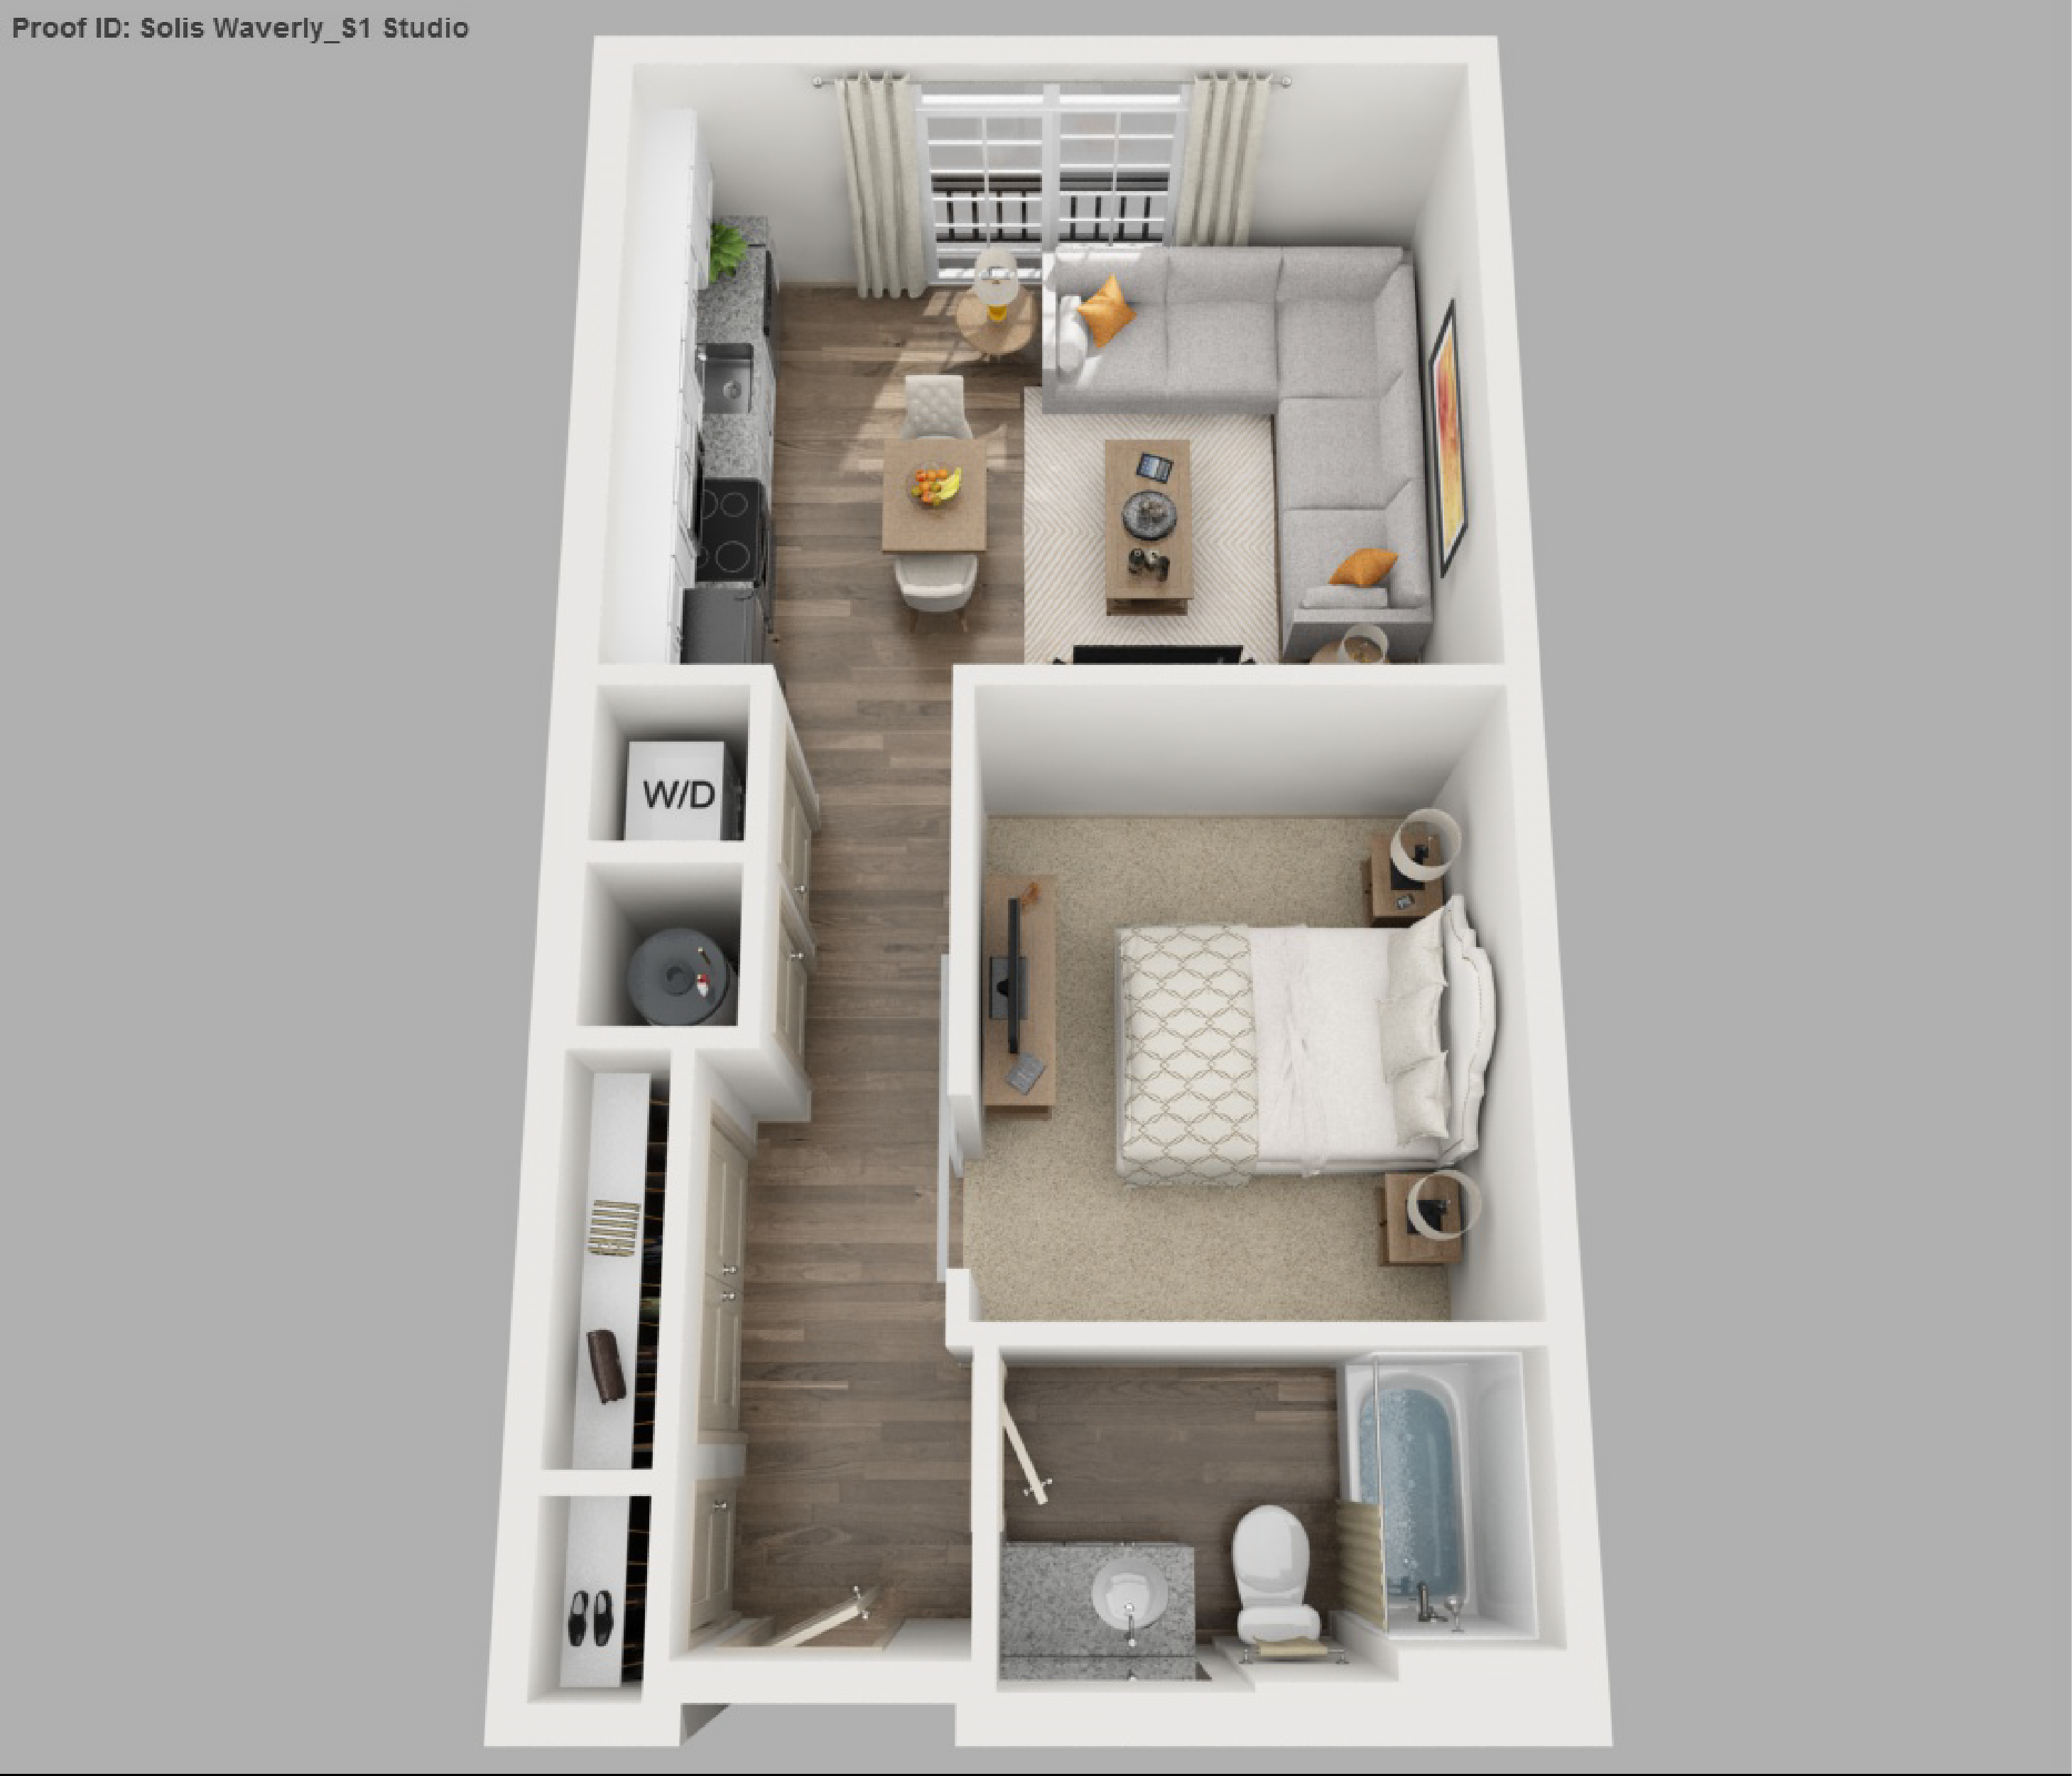 Studio Apartment Plan solis apartments floorplans - waverly